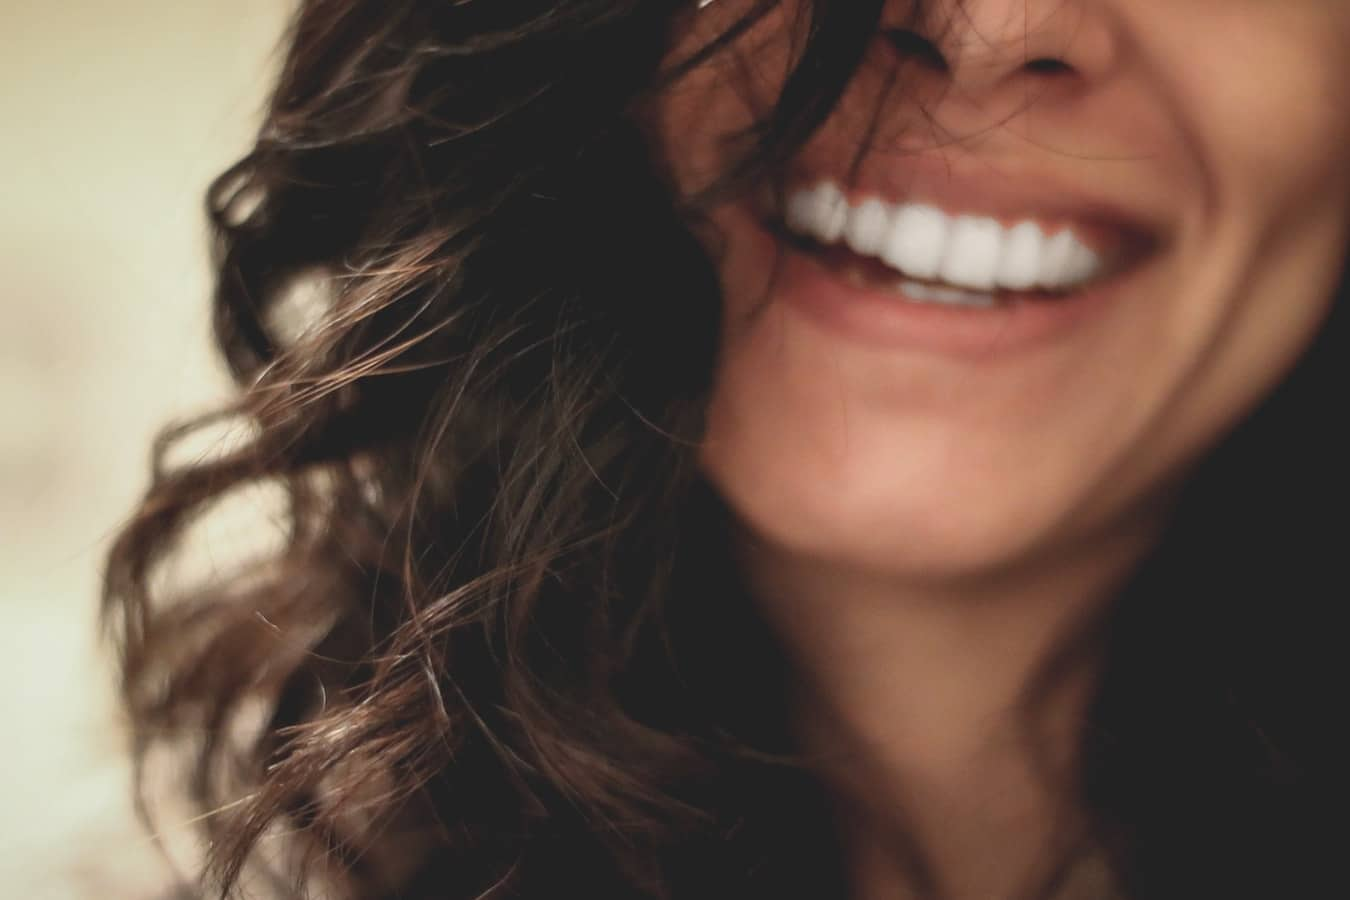 Woman with white teeth smiling